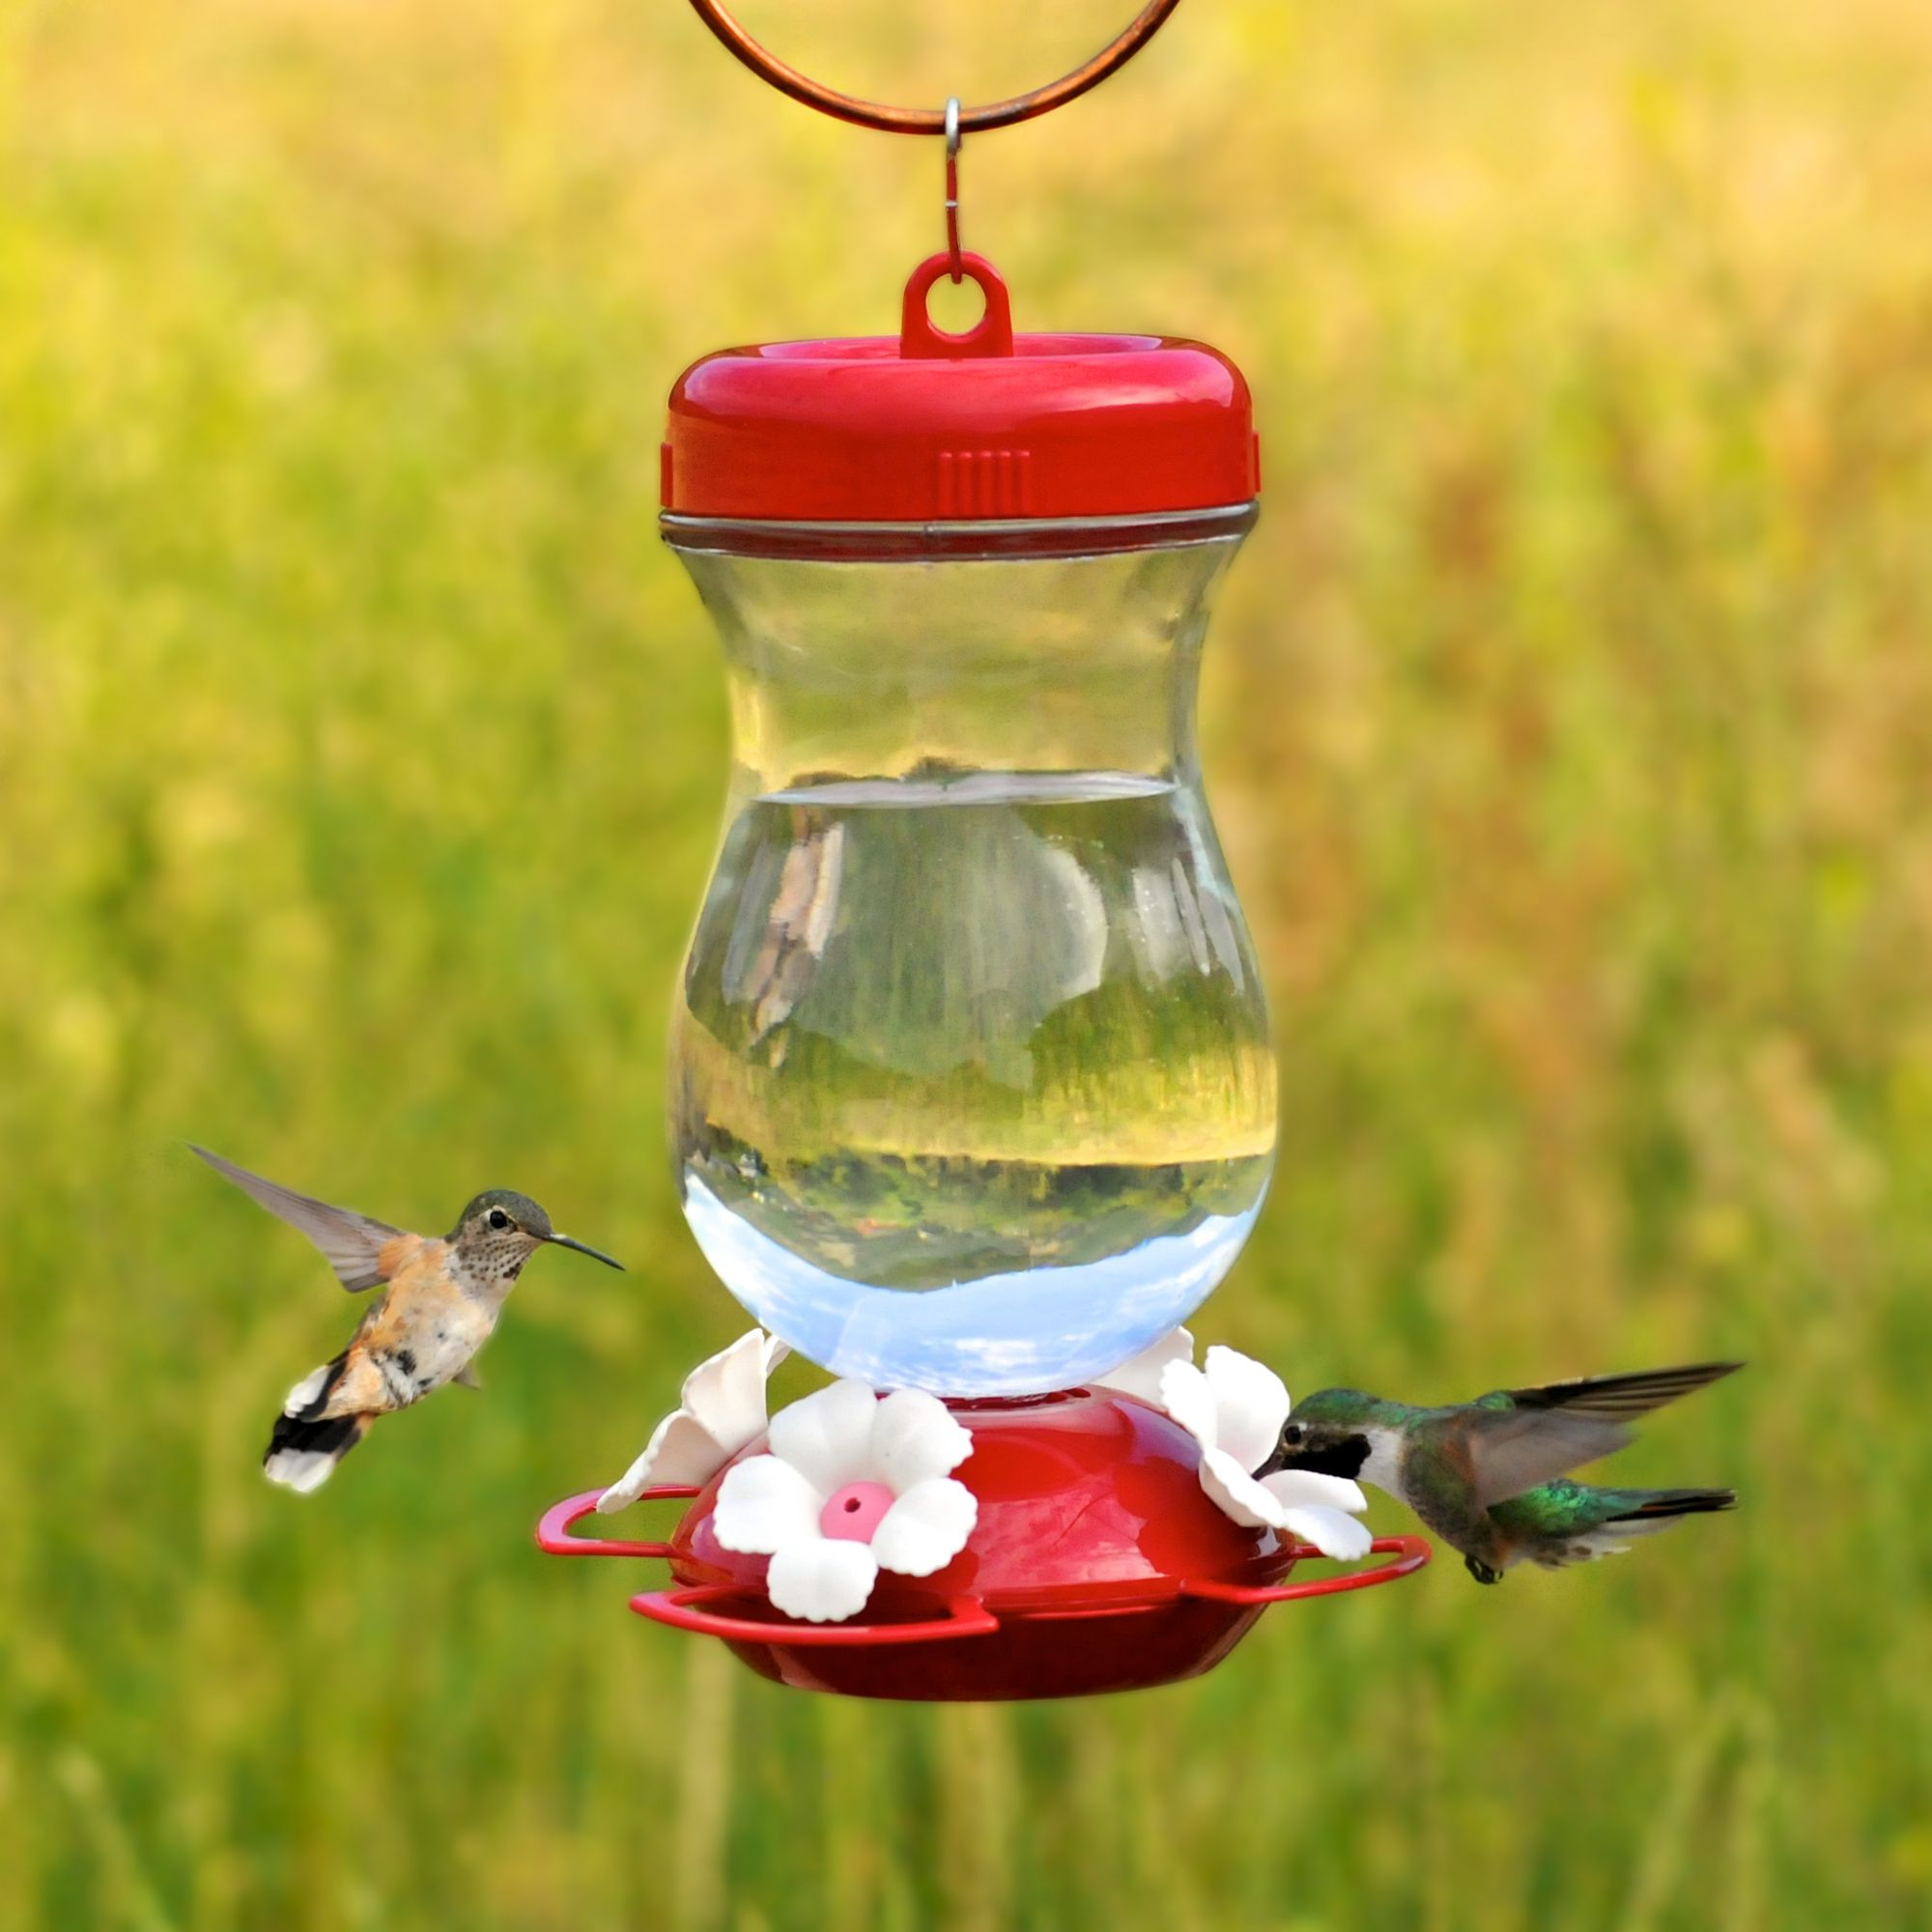 hummingbird feeders perkypet waist feeder perky com sale us model for bf pet pinch glass